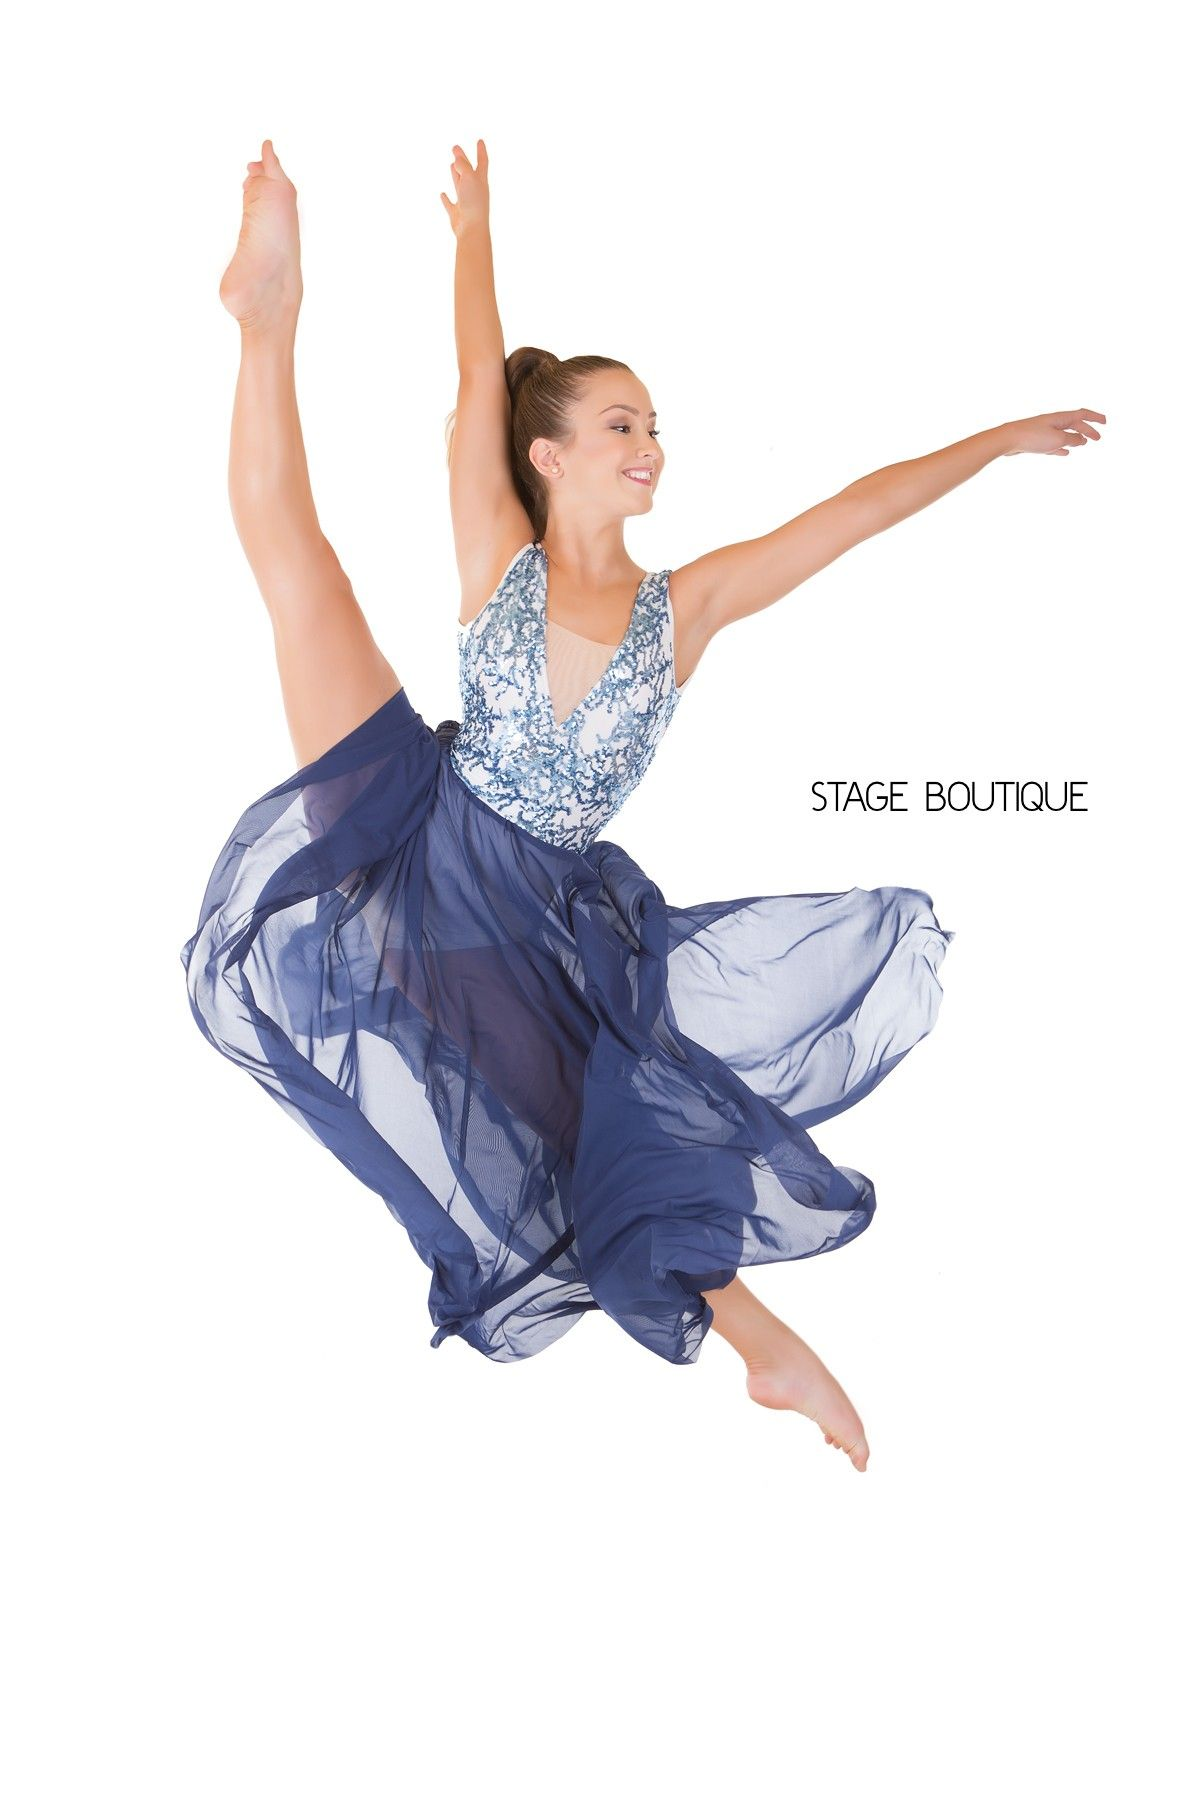 44c6e2893 White & Blue Sequin Dance Costume | Dance Costume ideas | Dance ...